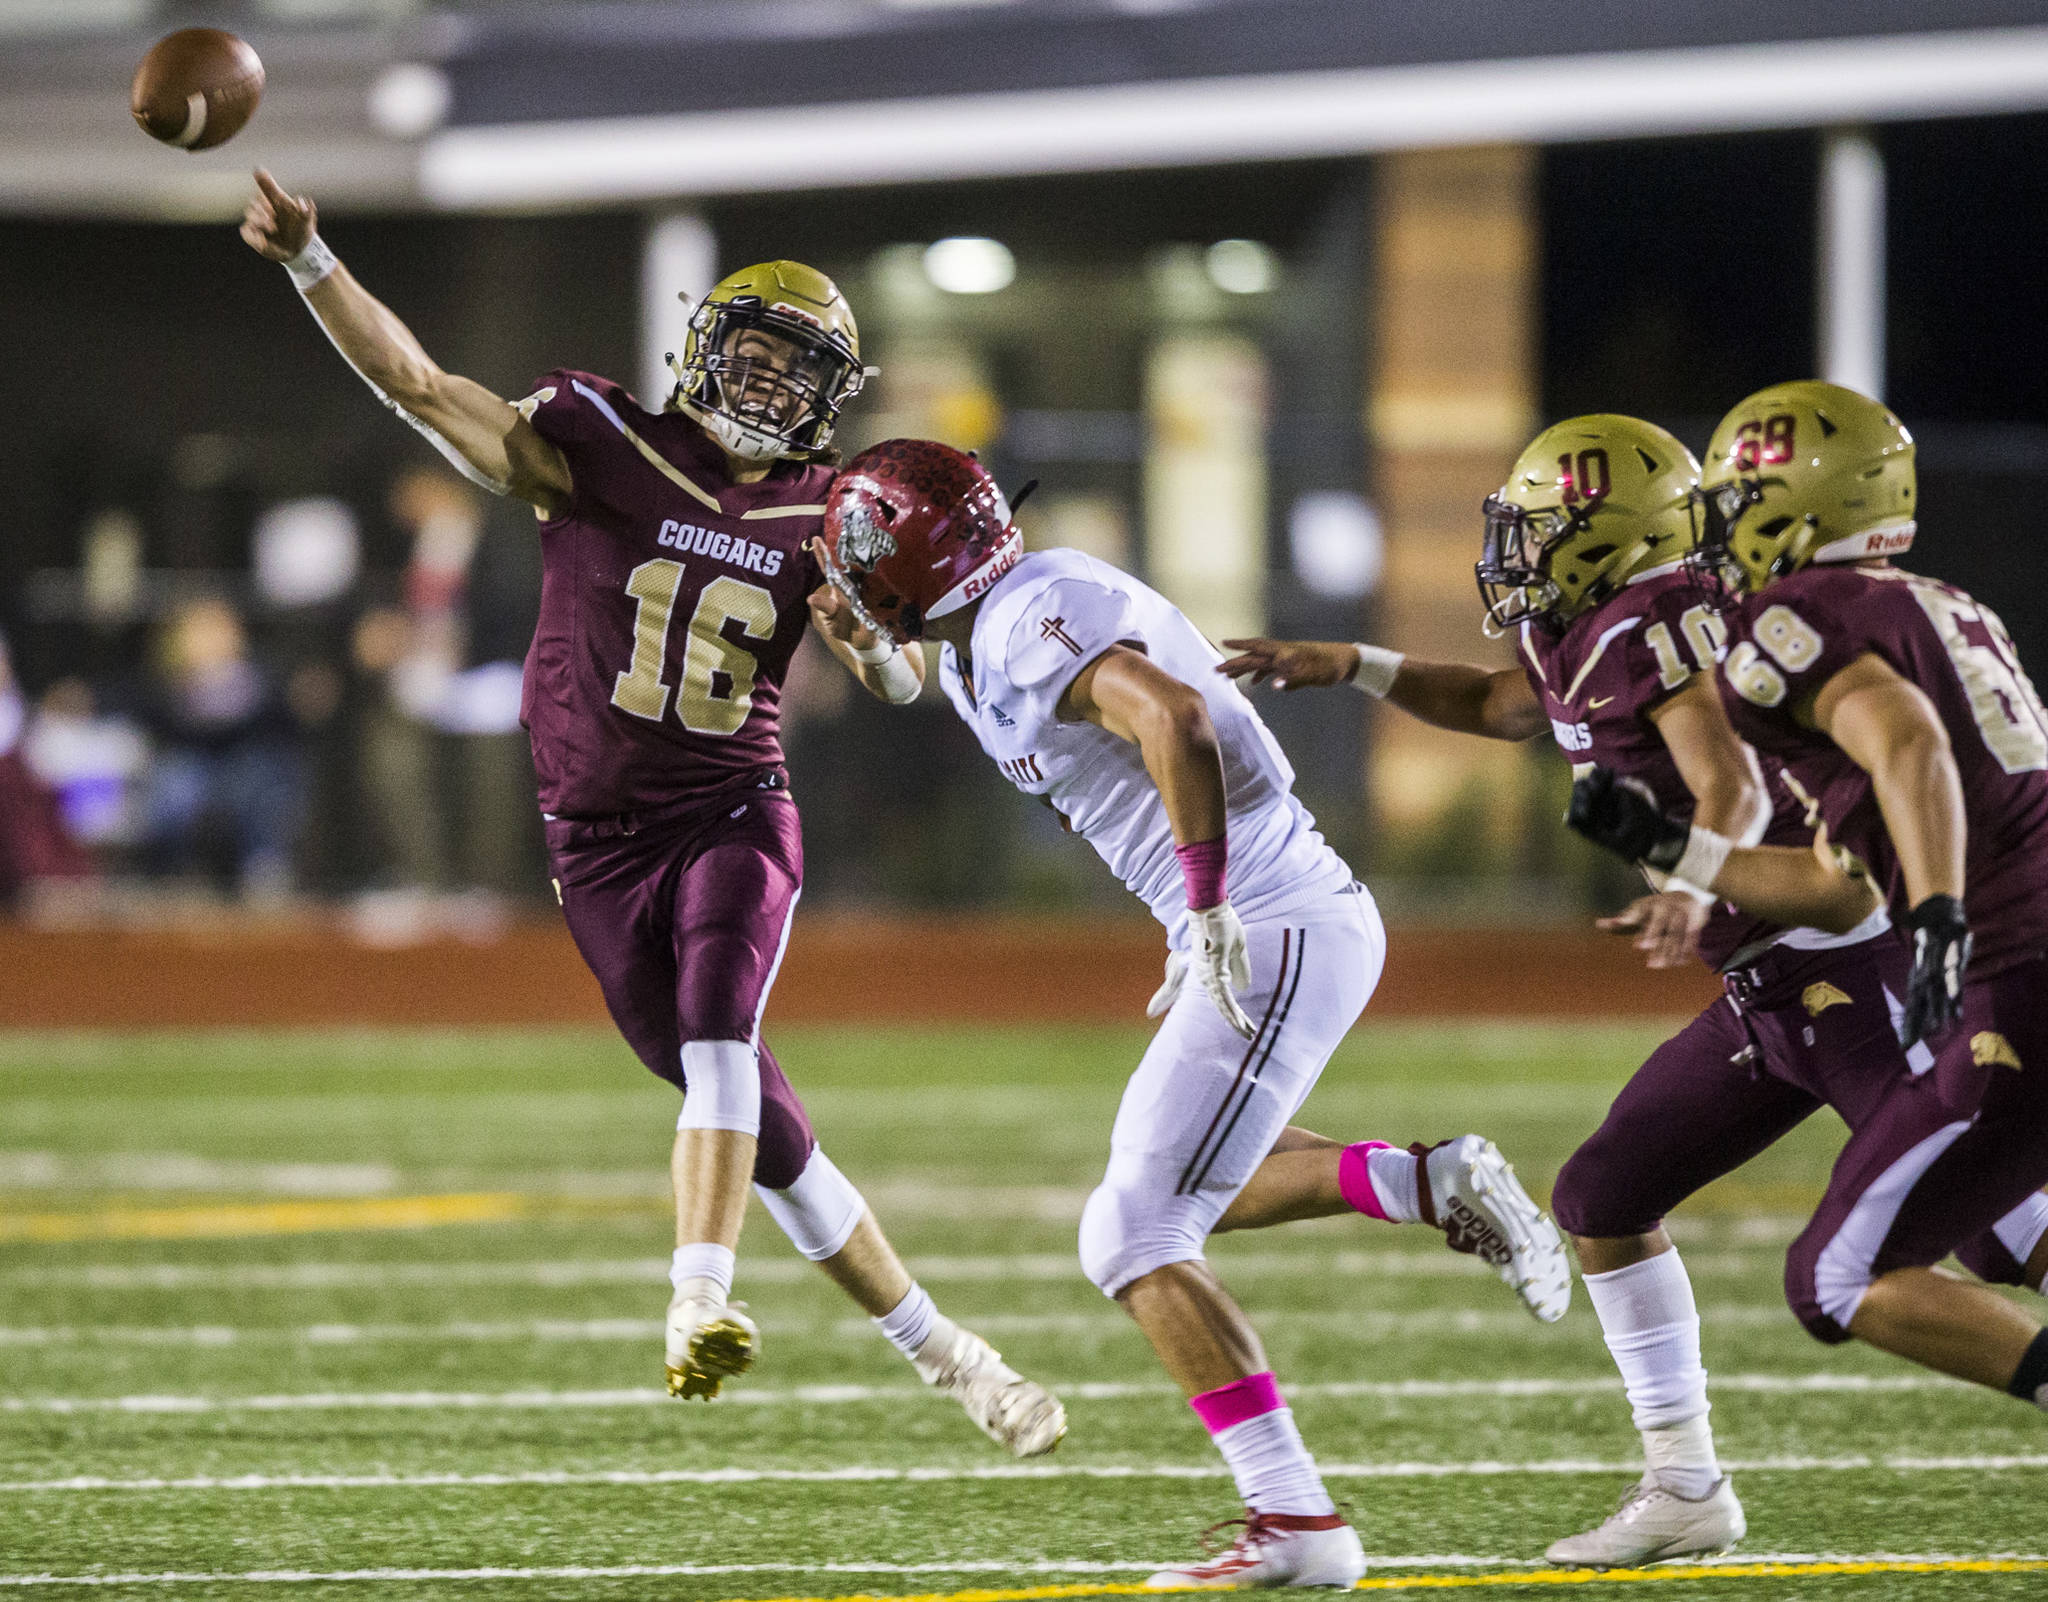 Led by dual-threat quarterback Jared Taylor (left) and a strong defense, Lakewood is in the state playoffs for the first time since 2012. (Olivia Vanni / The Herald)